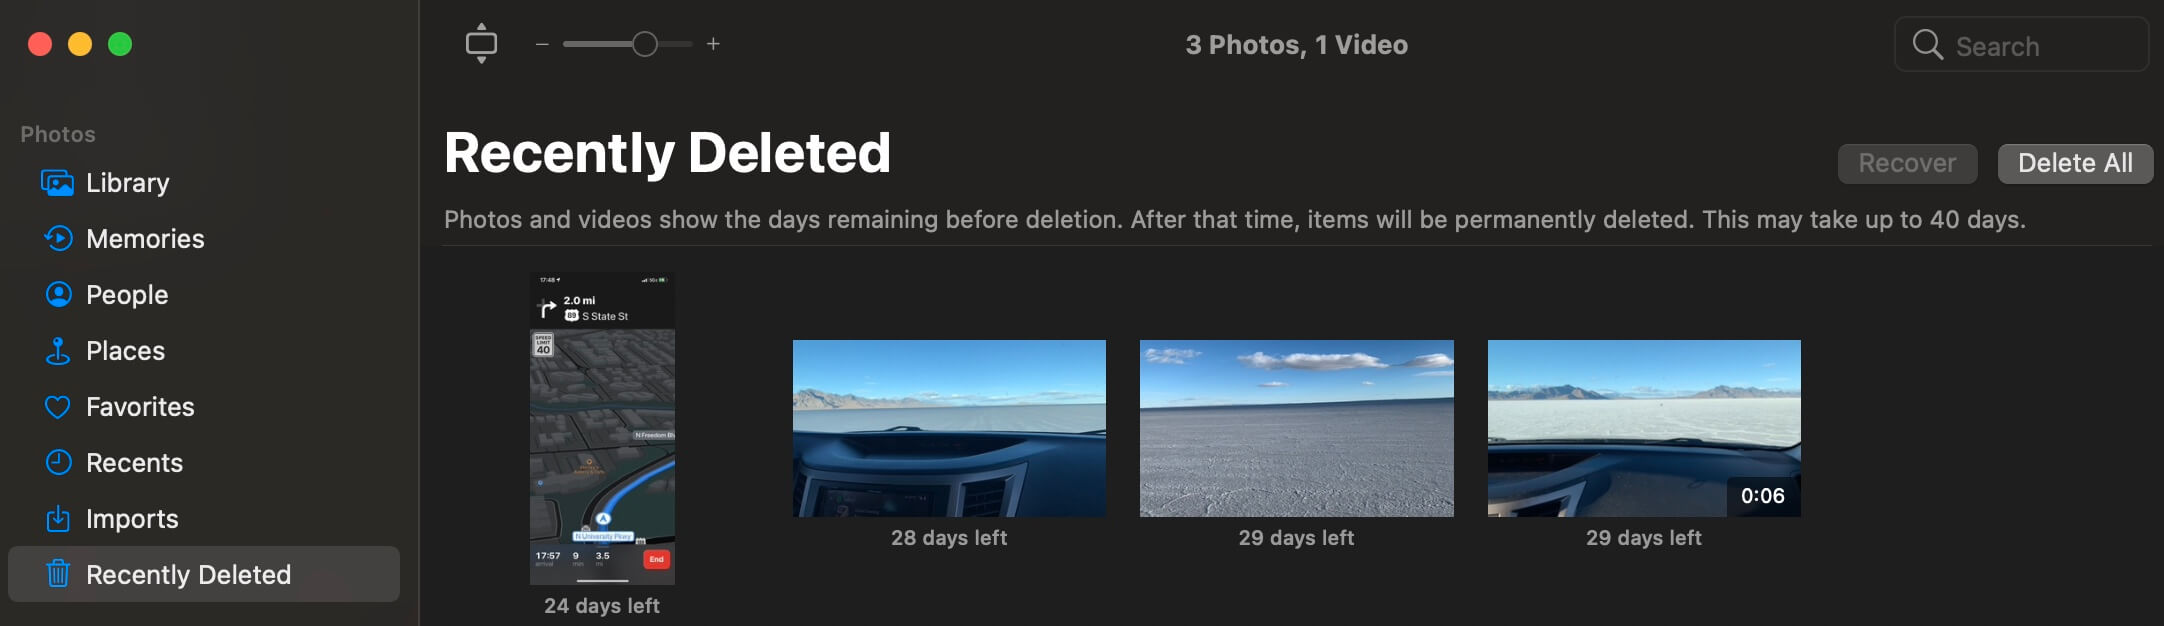 viewing recently deleted photos